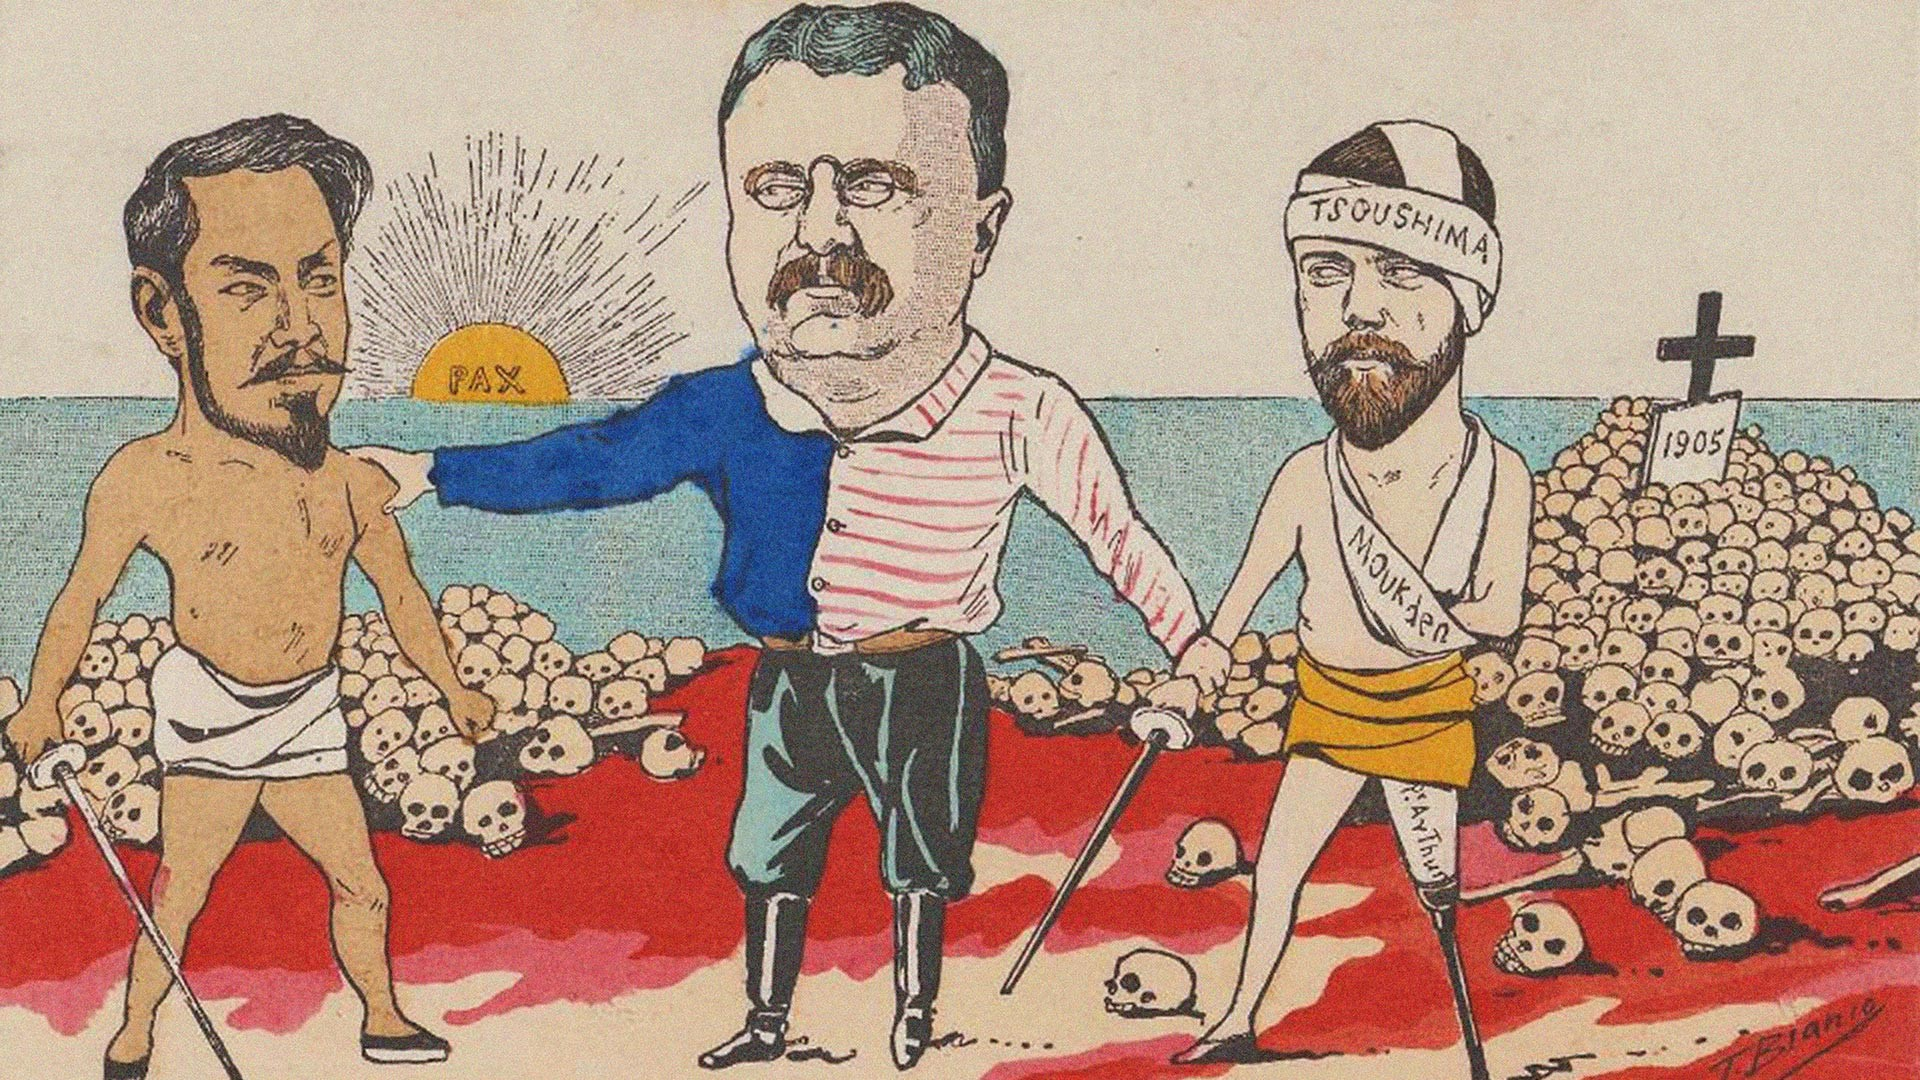 A caricature on the Treaty of Portsmouth, 1905.